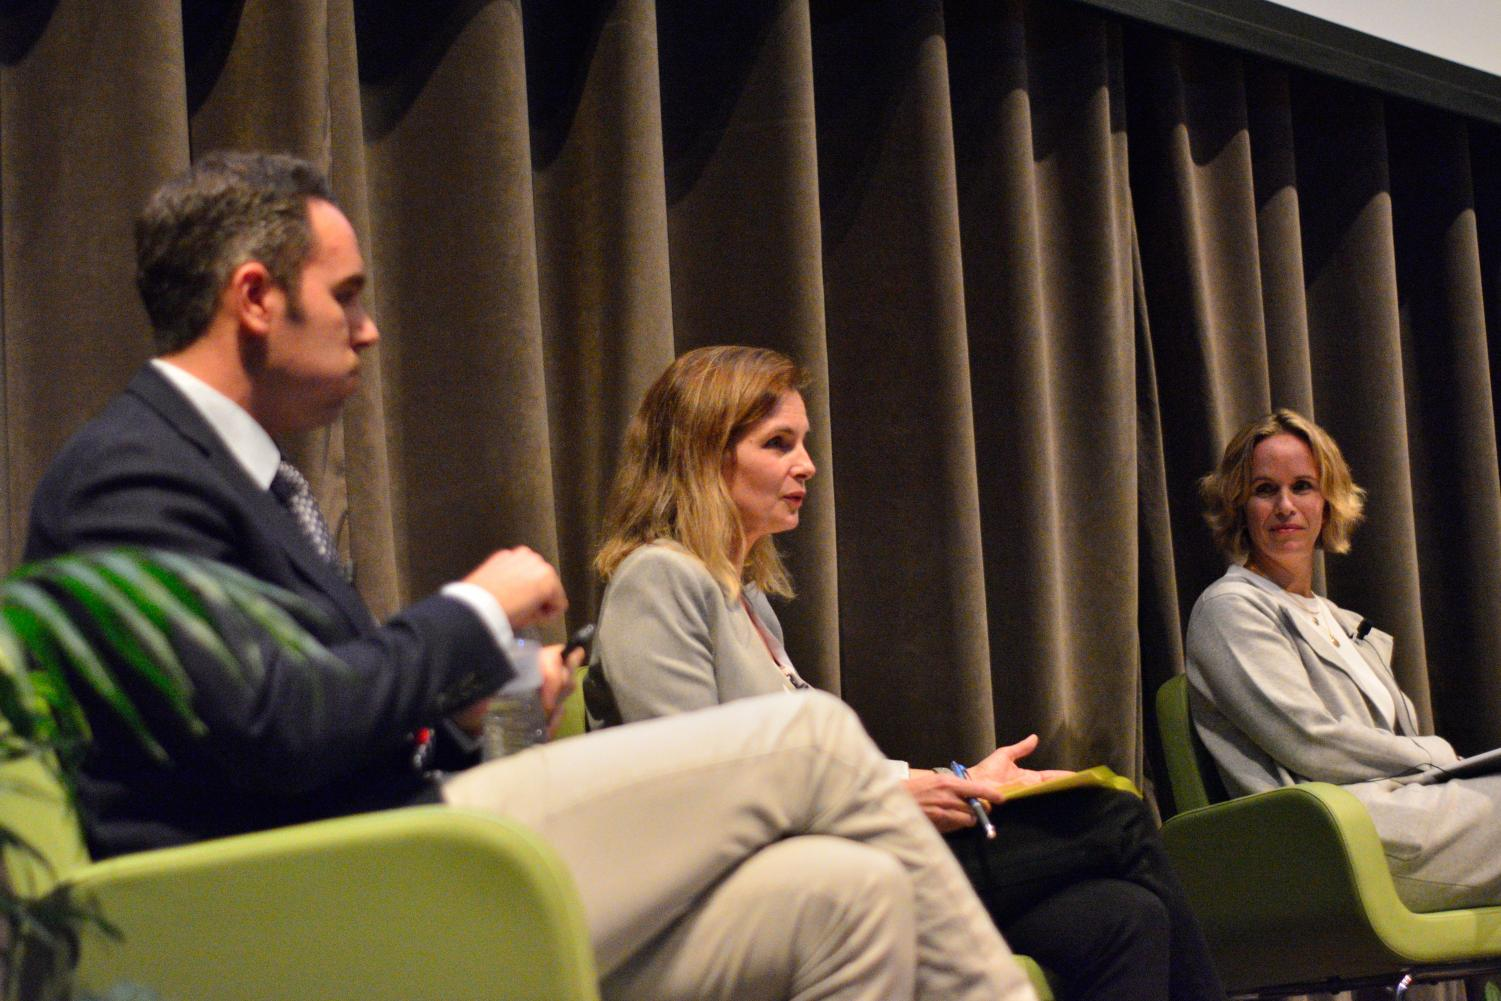 Noah Rachlin, Dean of Teaching and Learning, Melina Hale, University of Chicago vice provost and Elizabeth Kieff, psychiatrist and medical ethics faculty member, composed the wellness panel Oct. 29, held in Gordon Parks assembly hall.